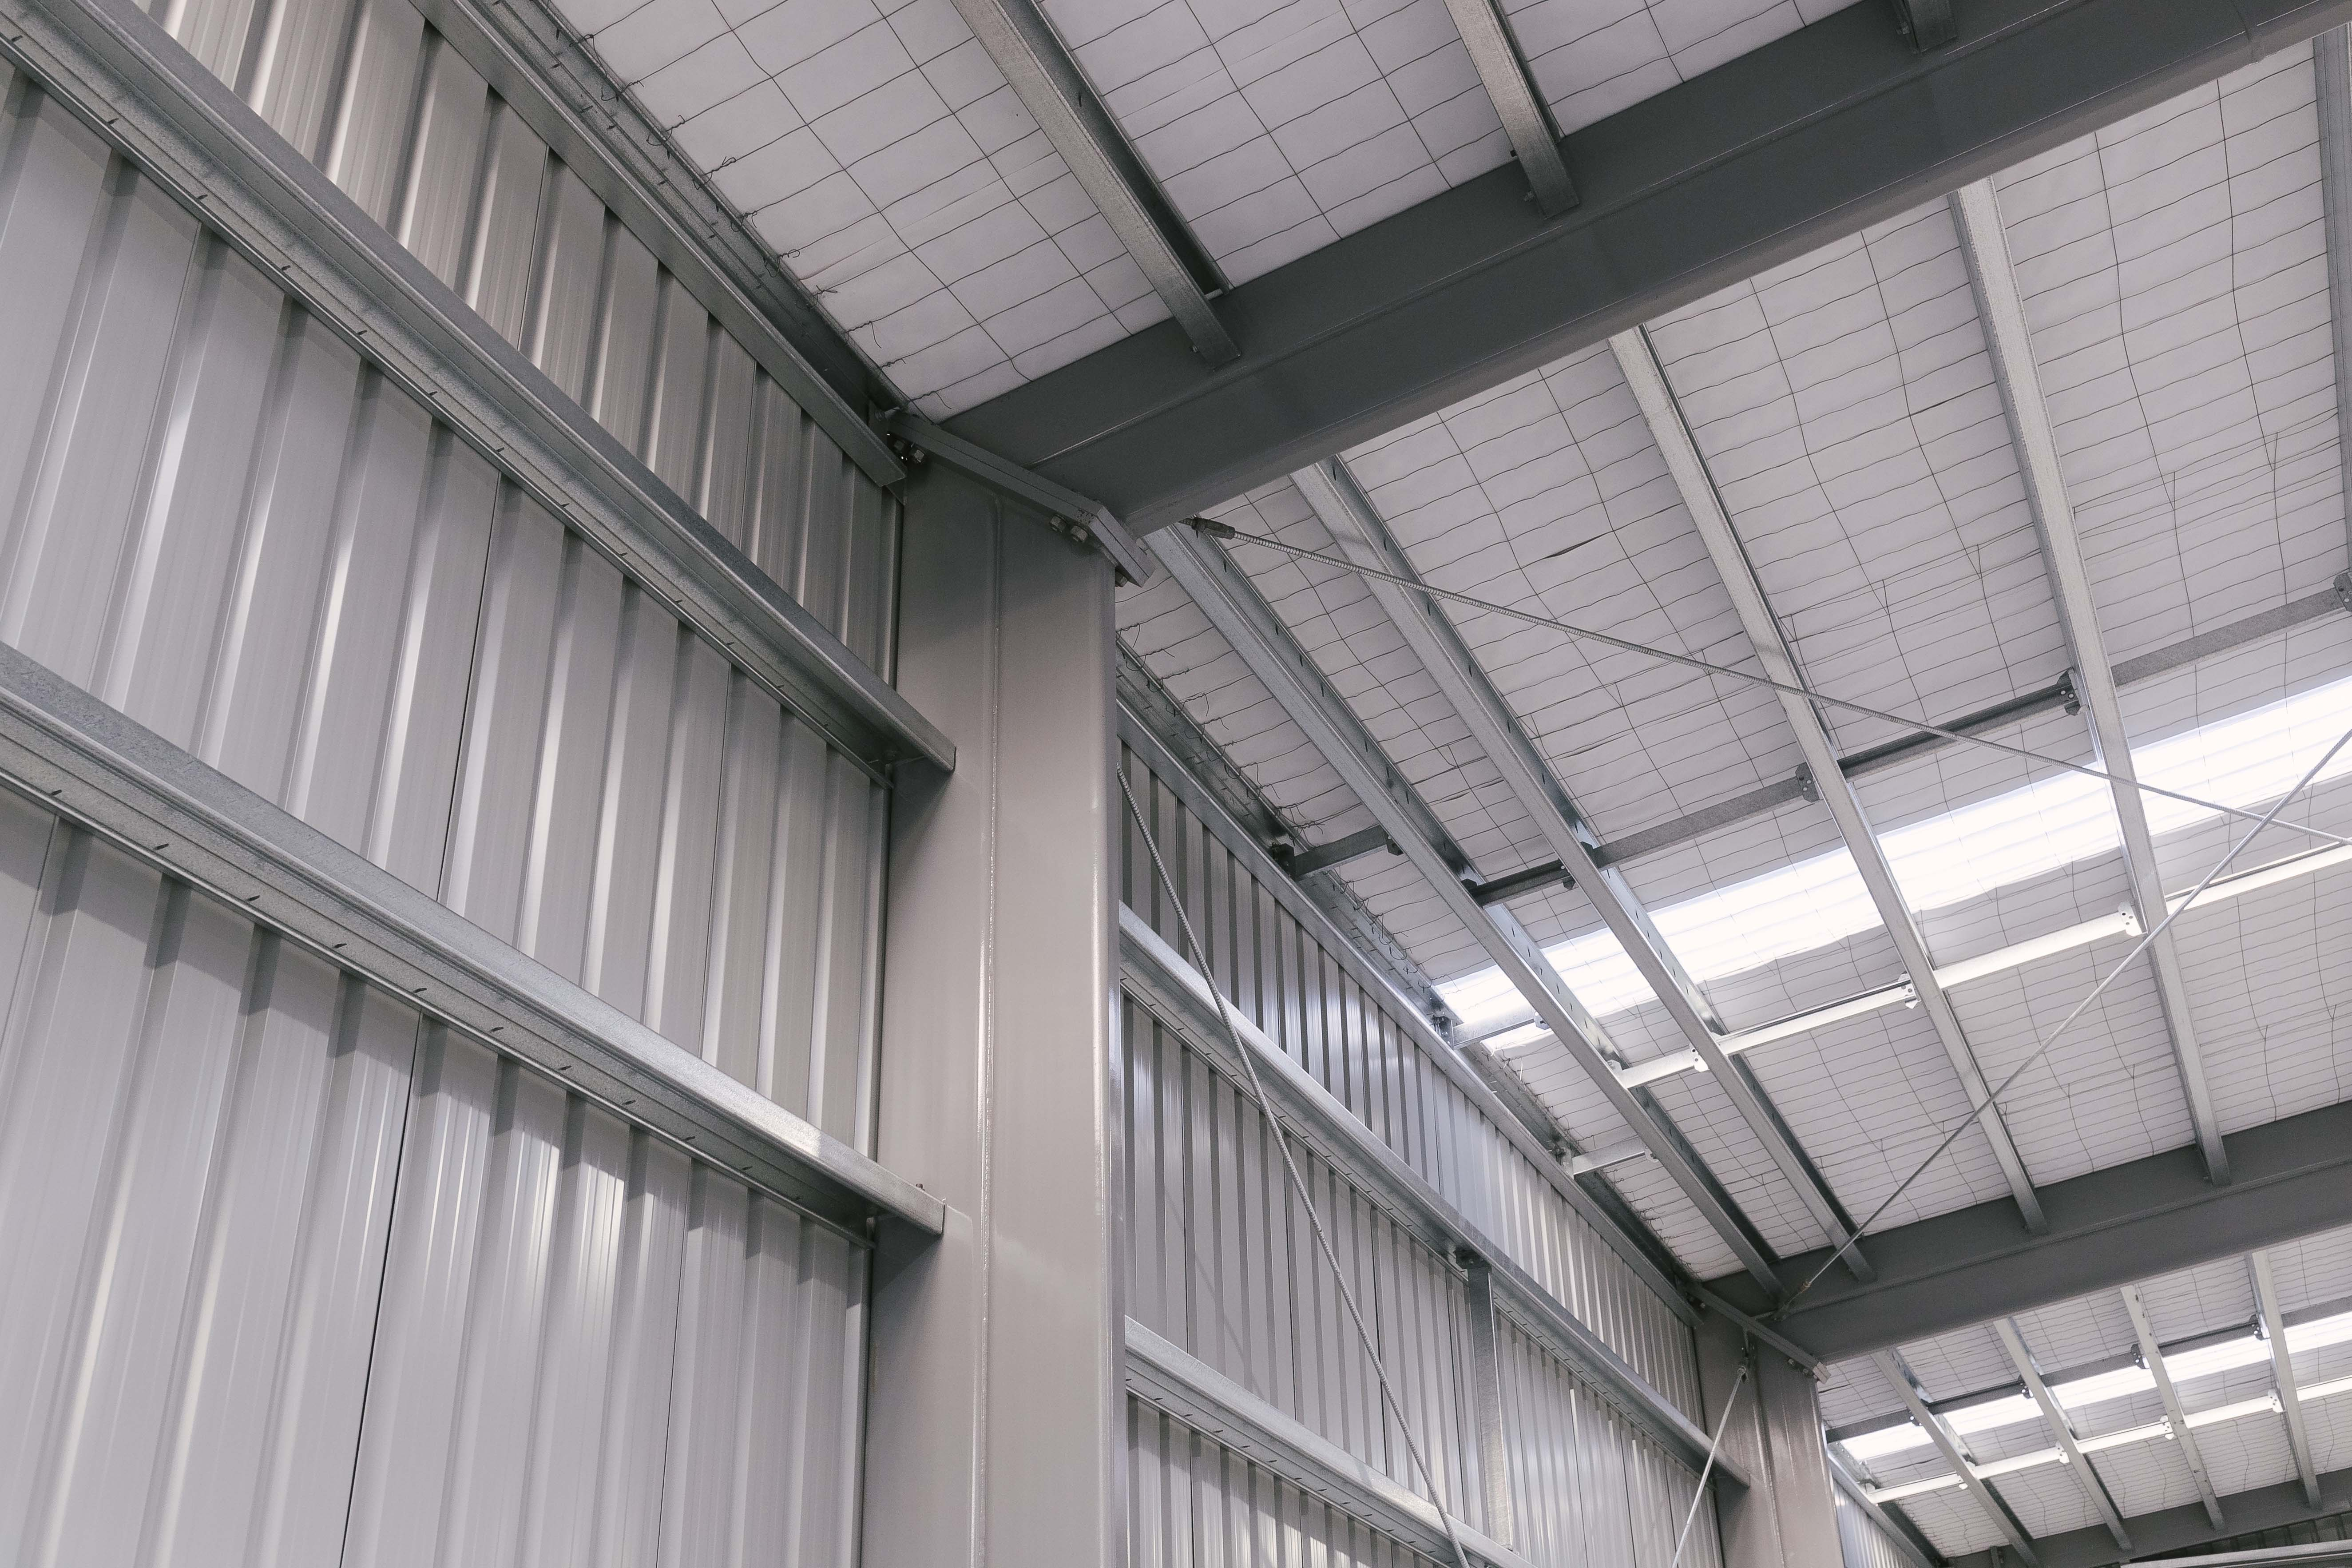 Corrosion protection for industrial buildings